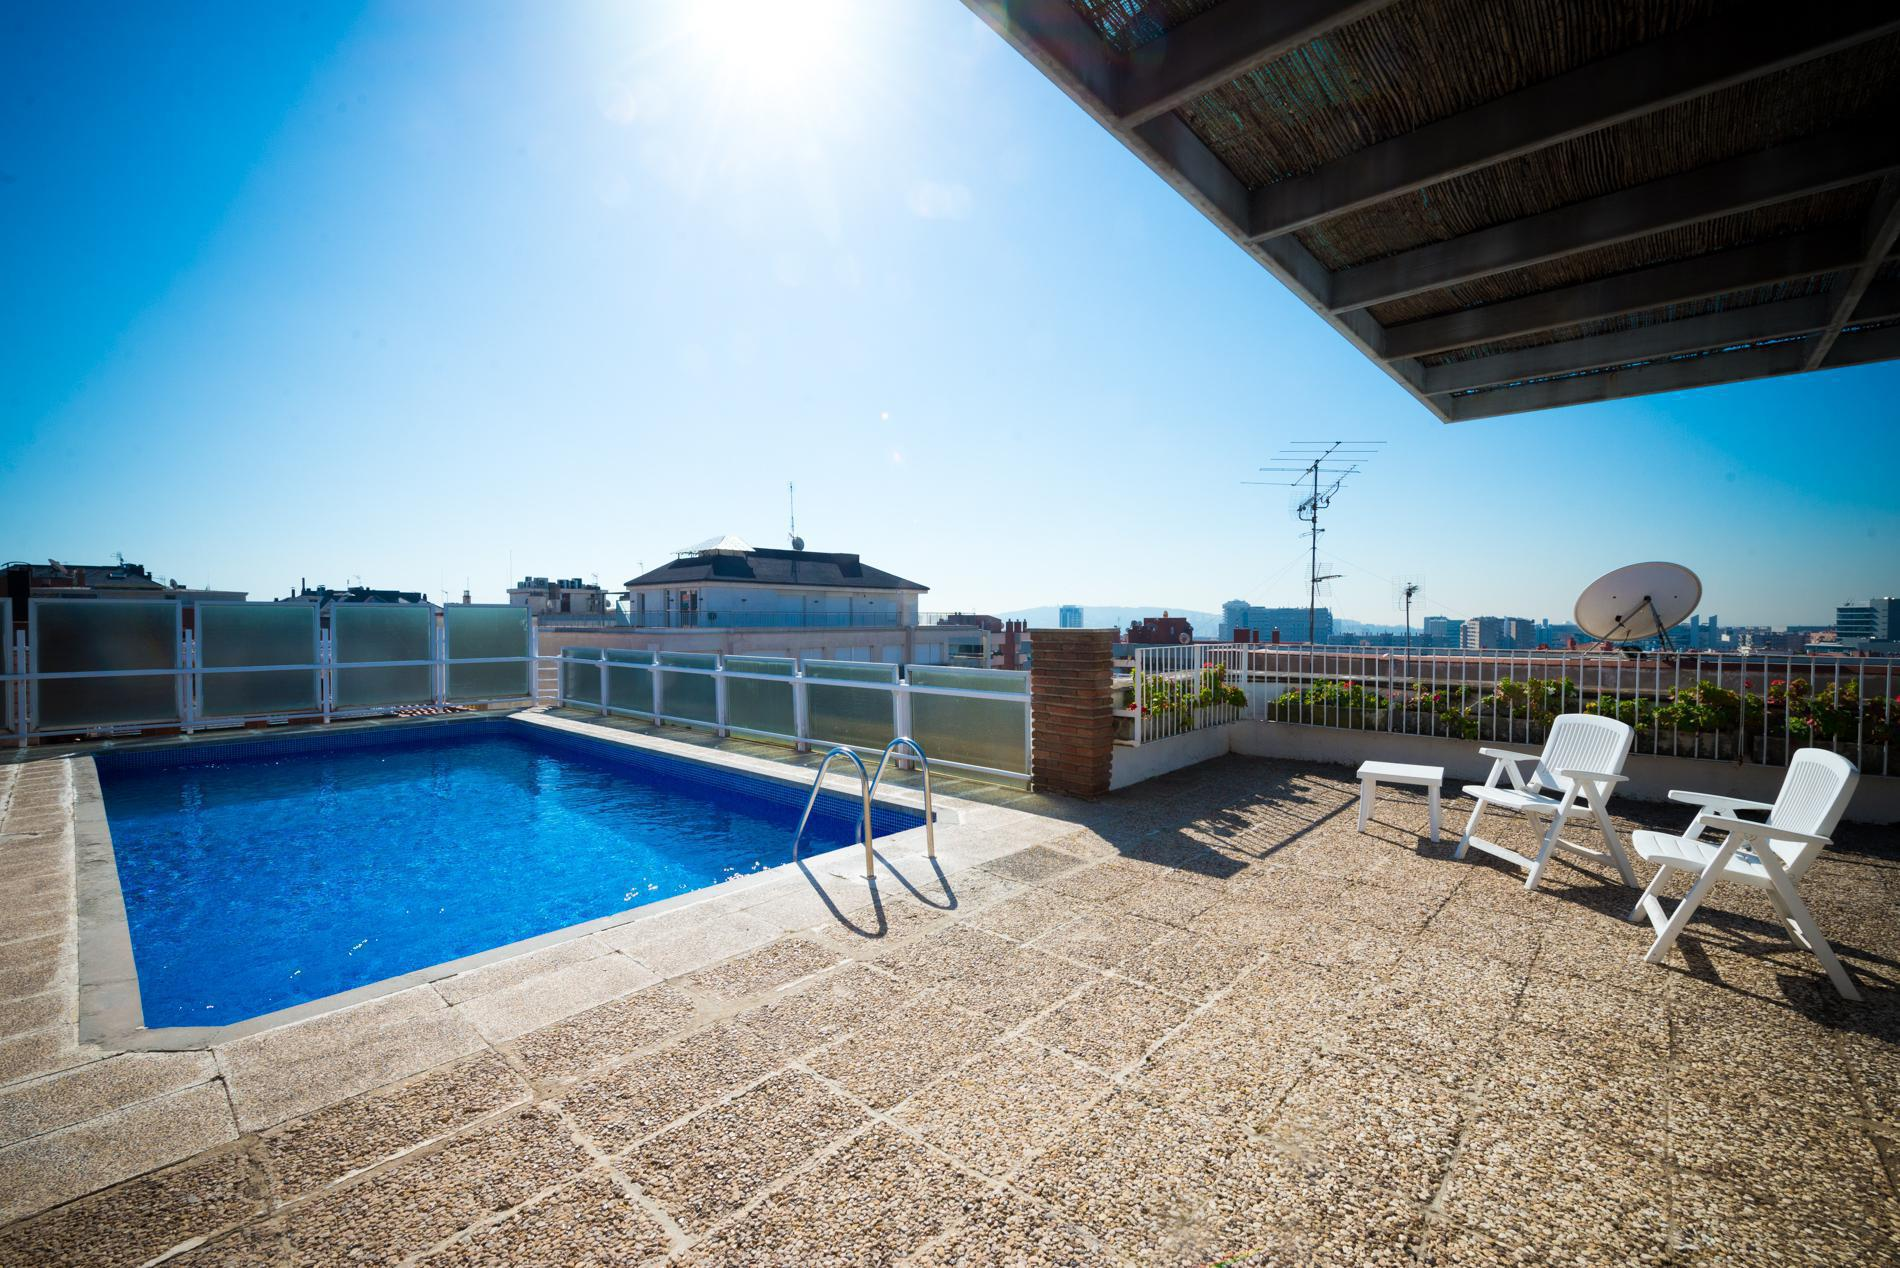 243891 Penthouse for sale in Sarrià-Sant Gervasi, Sant Gervasi-Galvany 4